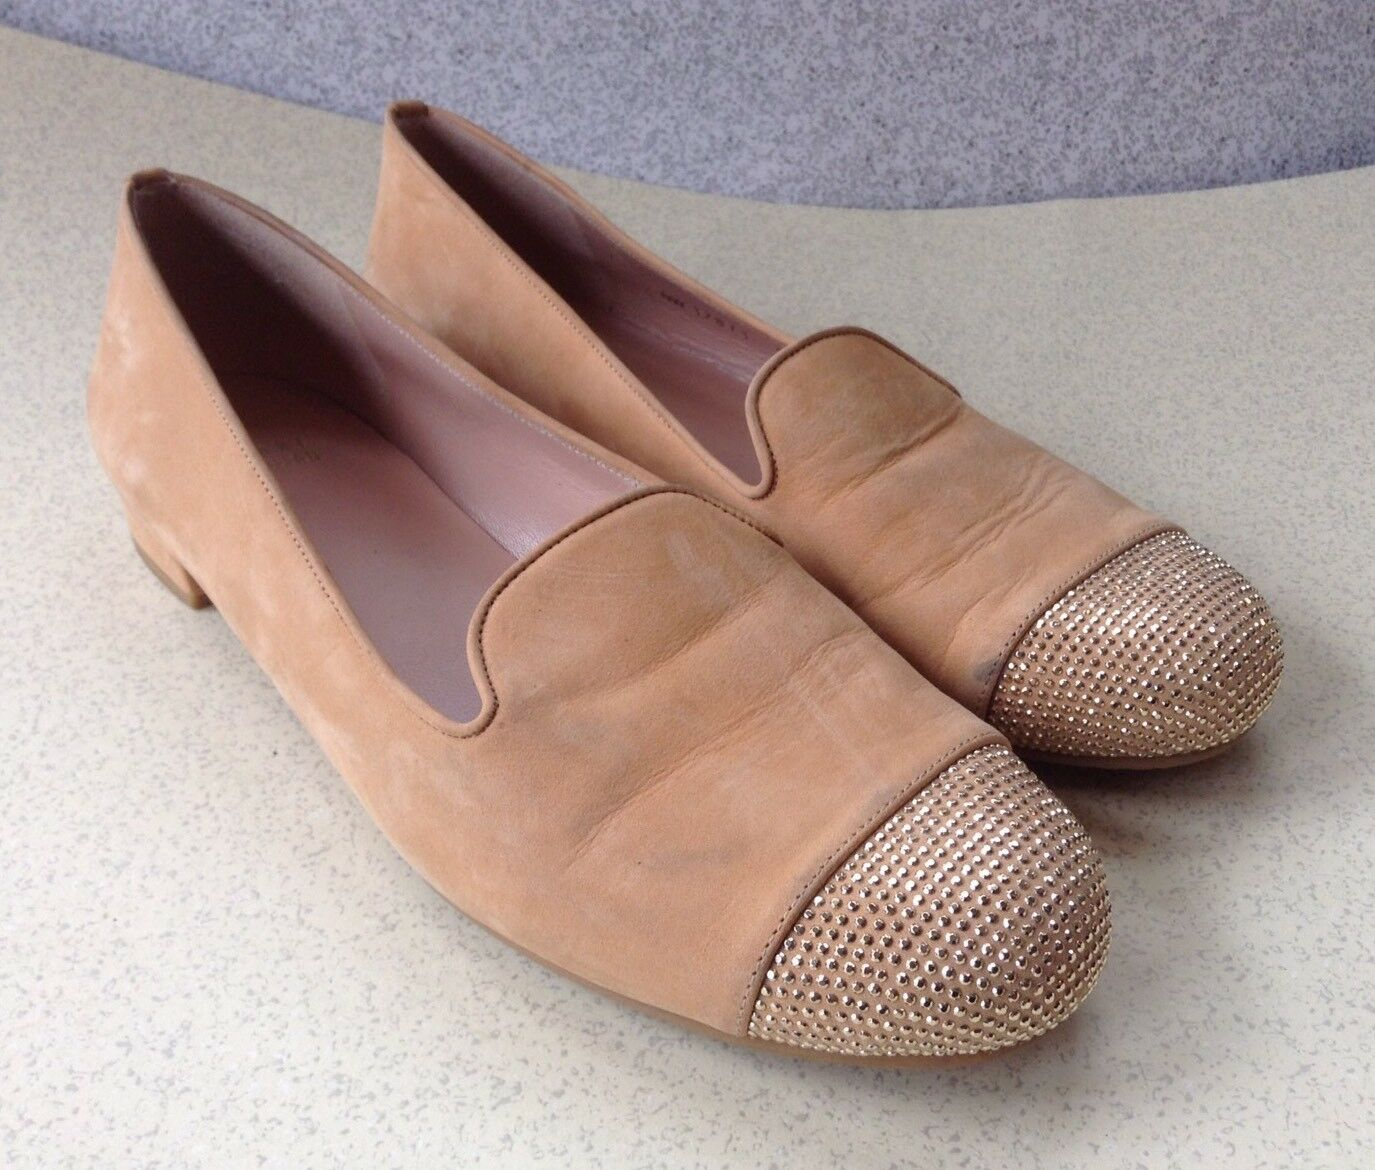 Stuart Weitzman Nude Suede Slip On Flats Sze 9.5M argent Beading Accent Glamour